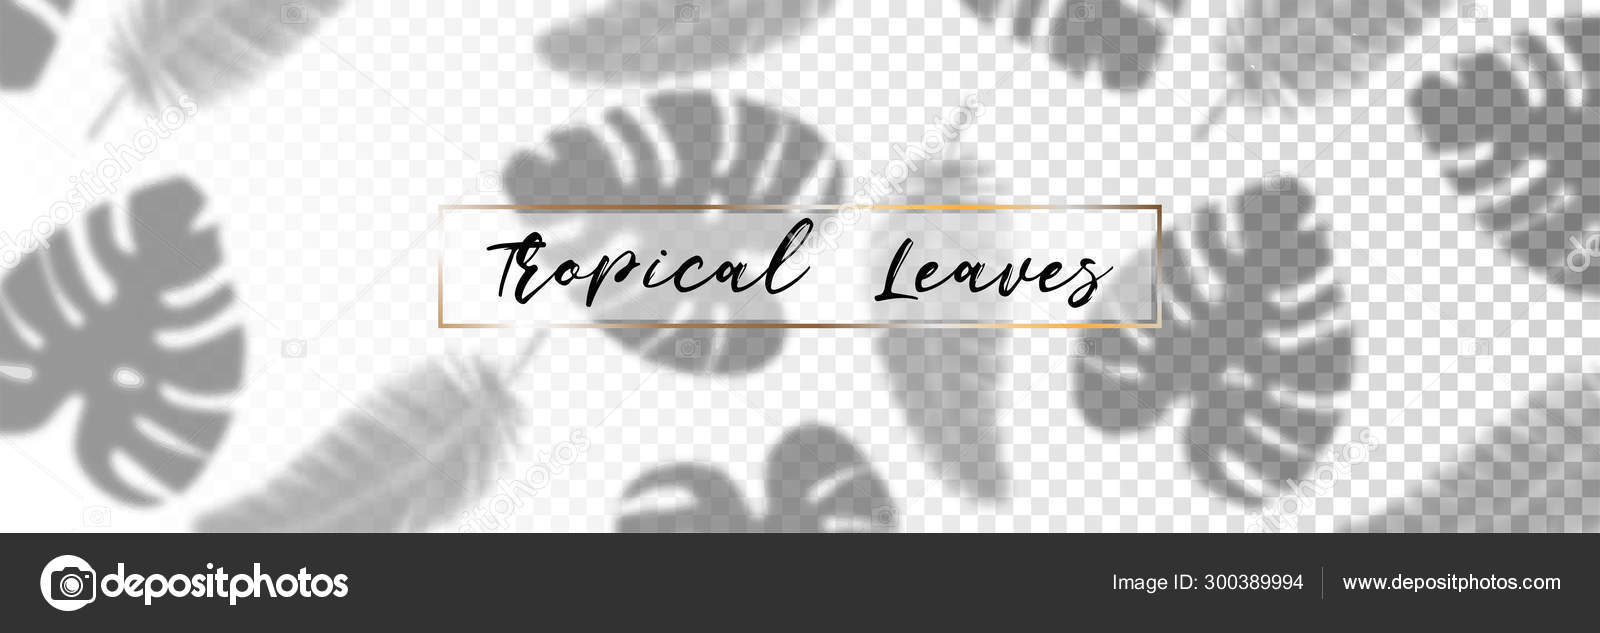 Shadow Overlay Effect Tropical Leaves Shadow Palm Leaves On Transparent Background Vector Stock Vector C Smile3377 300389994 Download 4,096 tropical leaves free vectors. https depositphotos com 300389994 stock illustration shadow overlay effect tropical leaves html